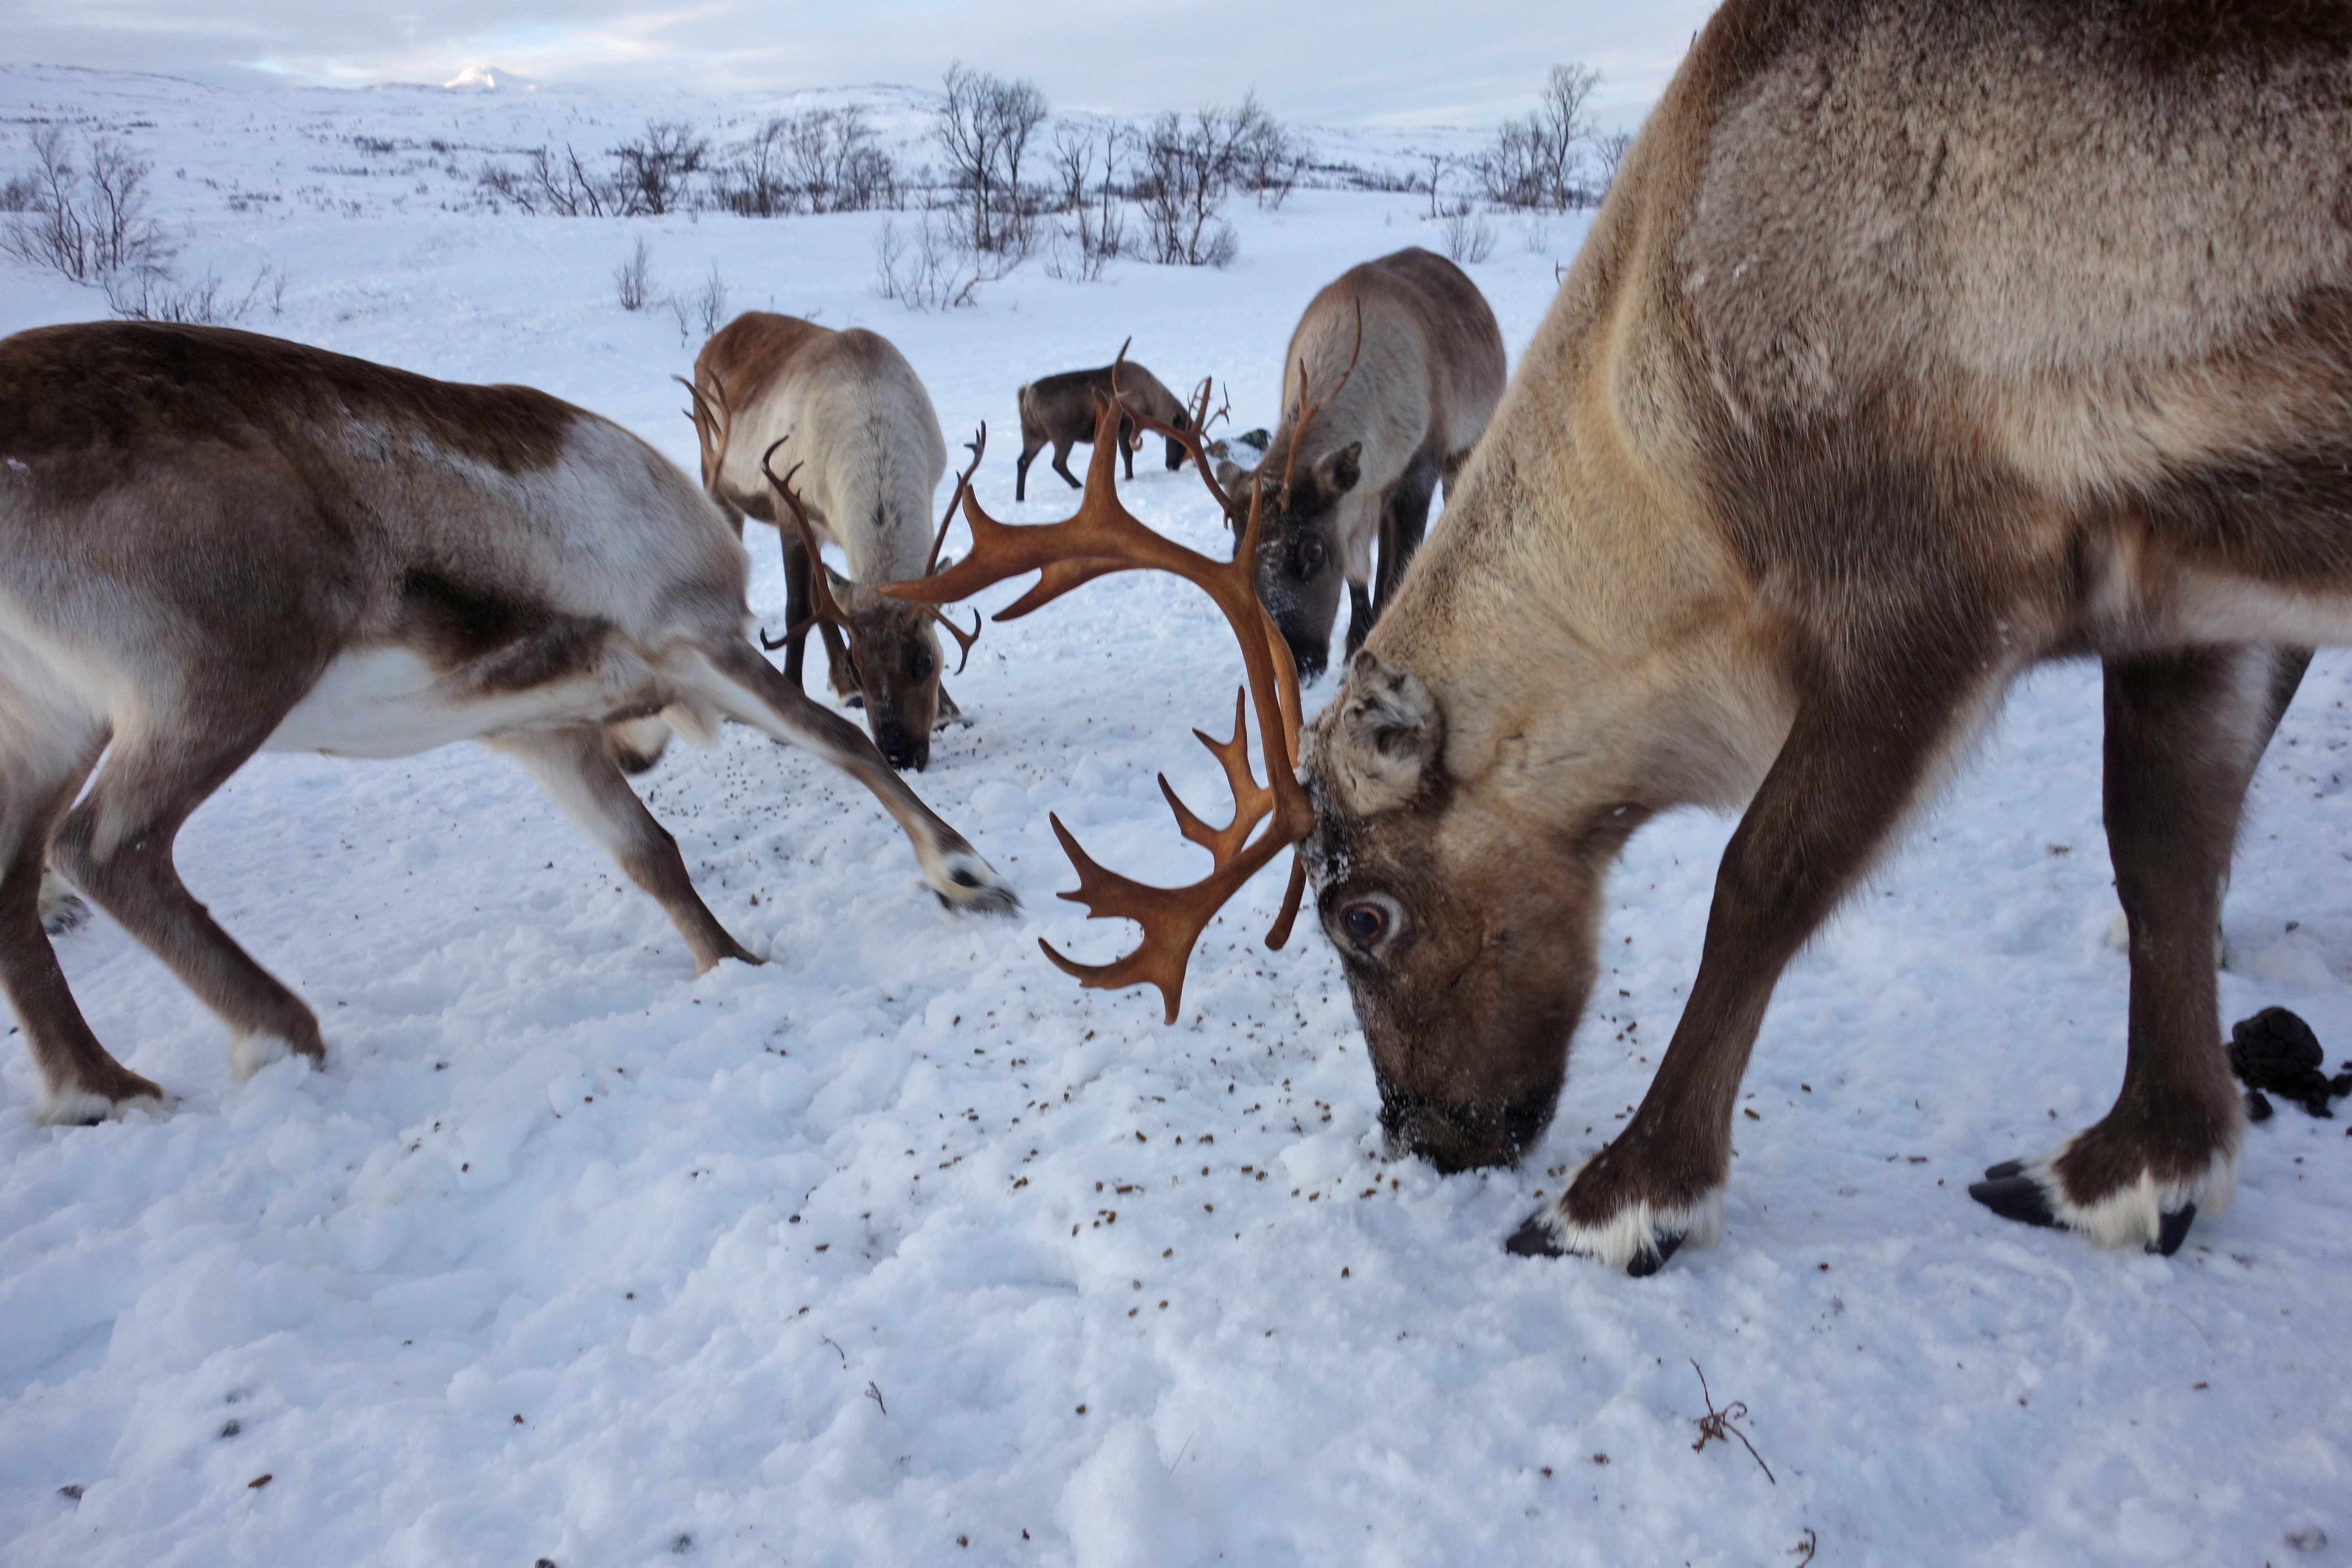 A new study carried out in Arctic Russia has indicated a link between decreasing levels of ice cover caused by rising temperatures and the starvation of thousands of reindeer.